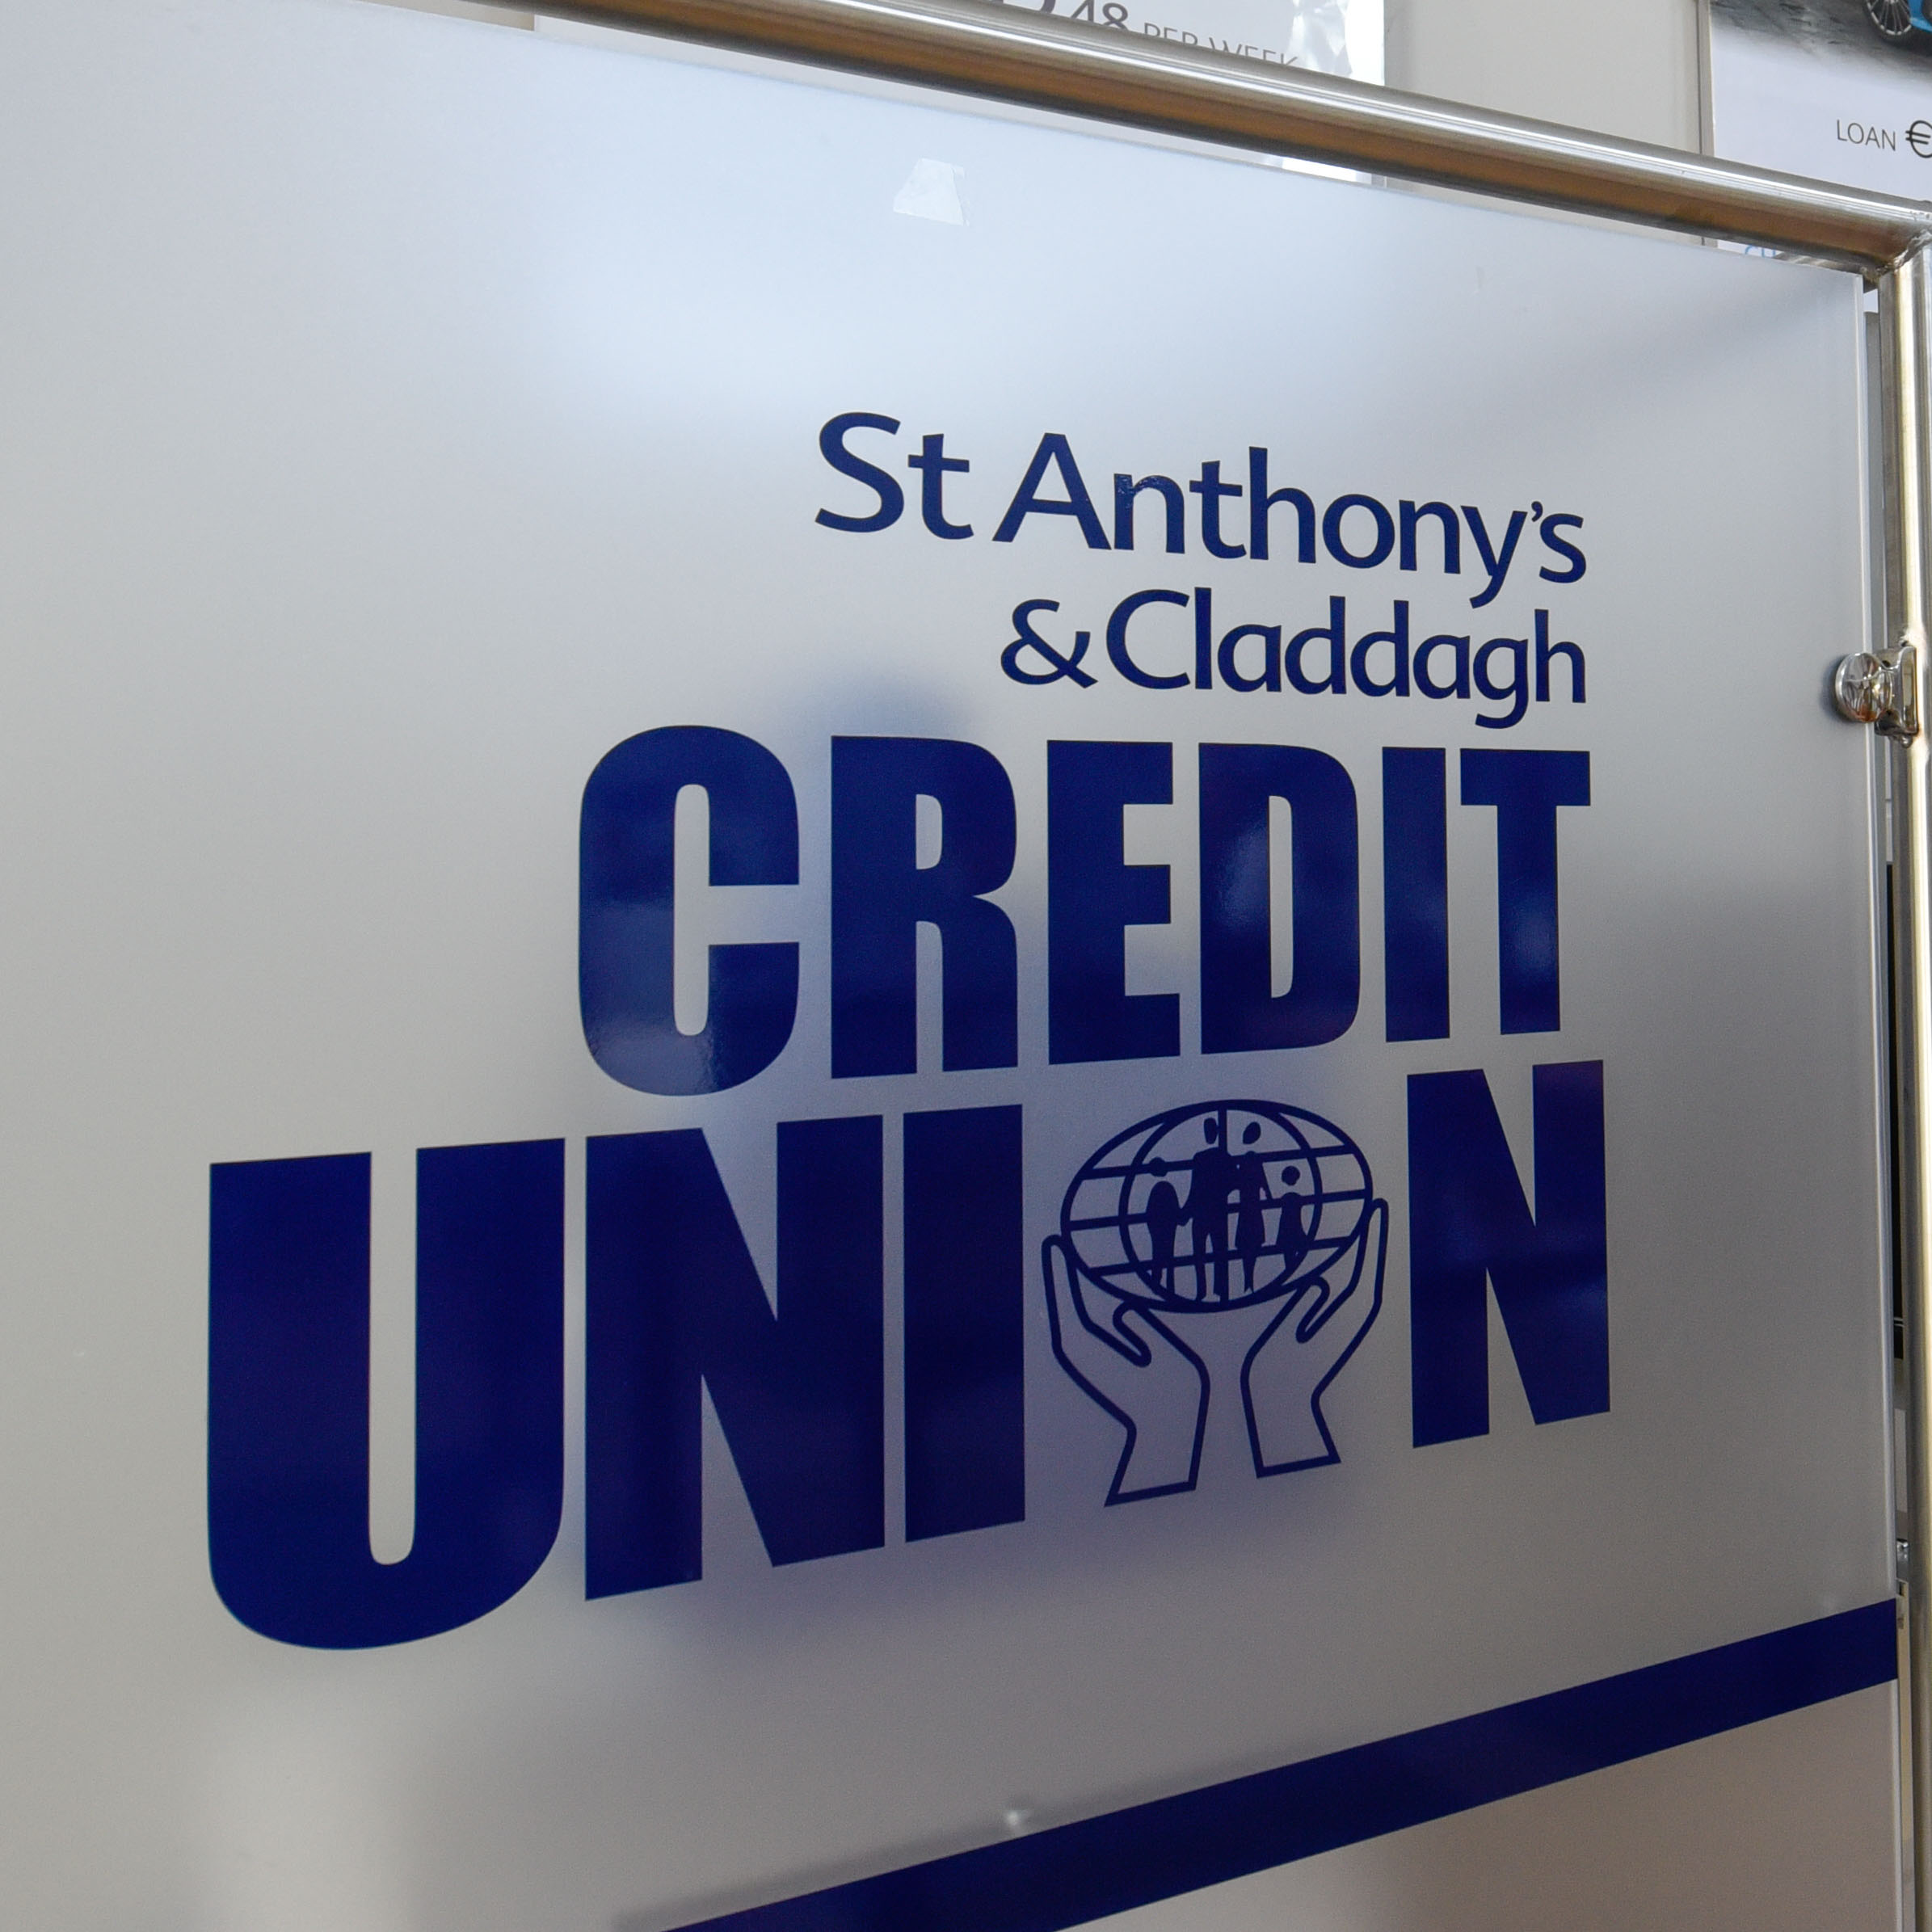 St-Anthonys-Credit-Union-4.jpg